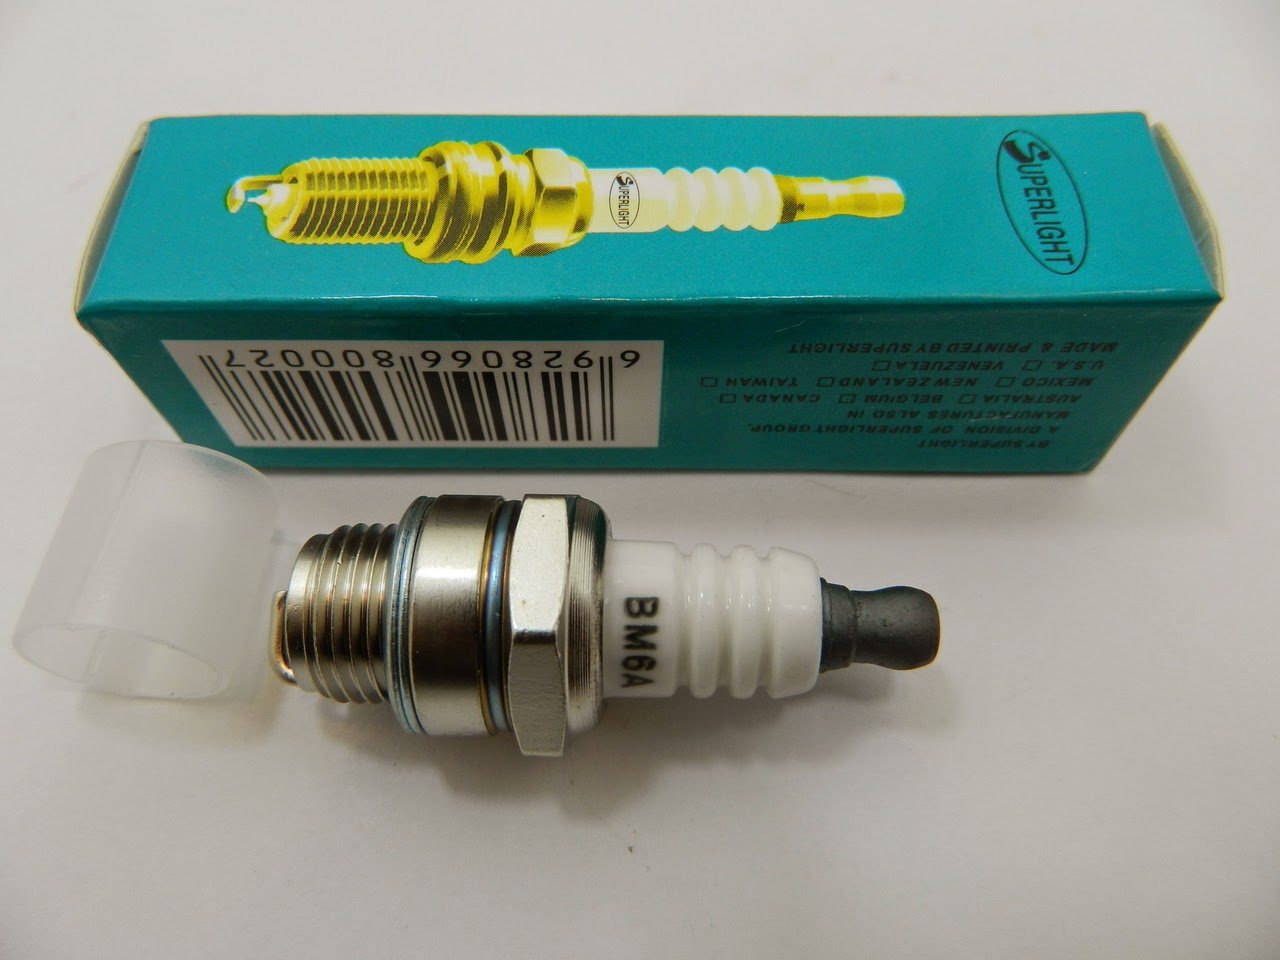 http://www.chainsawpartsonline.co.uk/superlight-spark-plug-replaces-ngk-bpmr7a-fits-most-chainsaw-models/